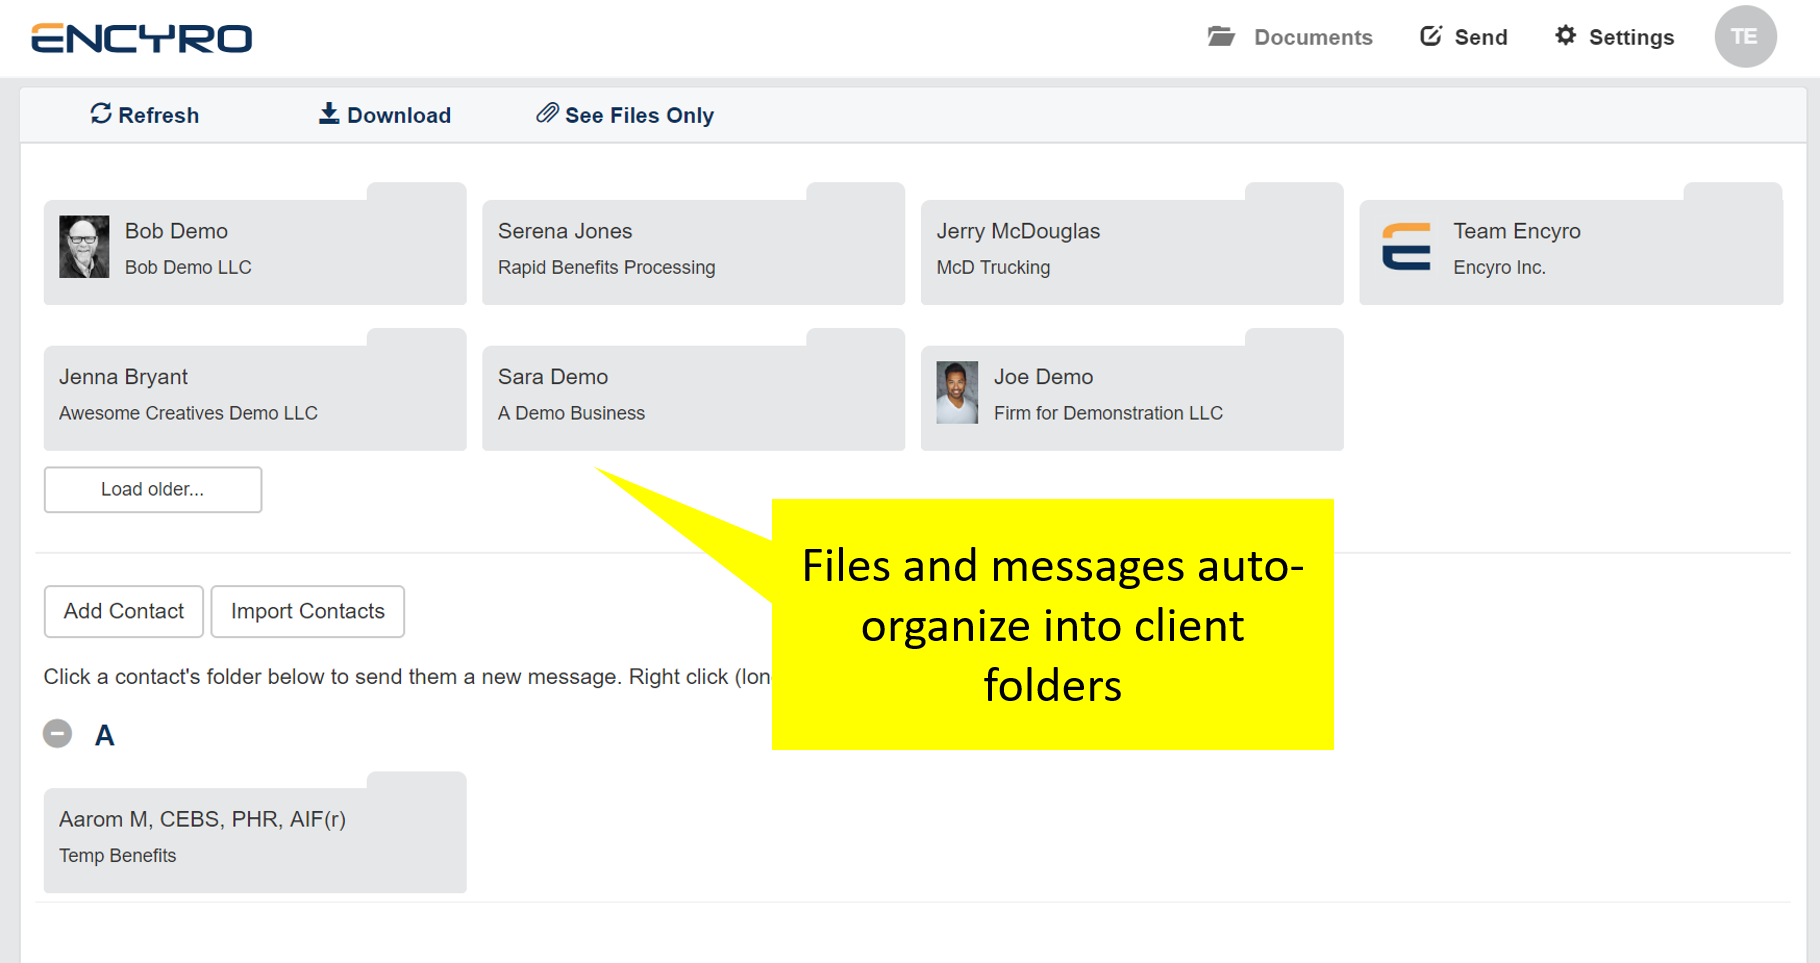 Files auto-organize by client